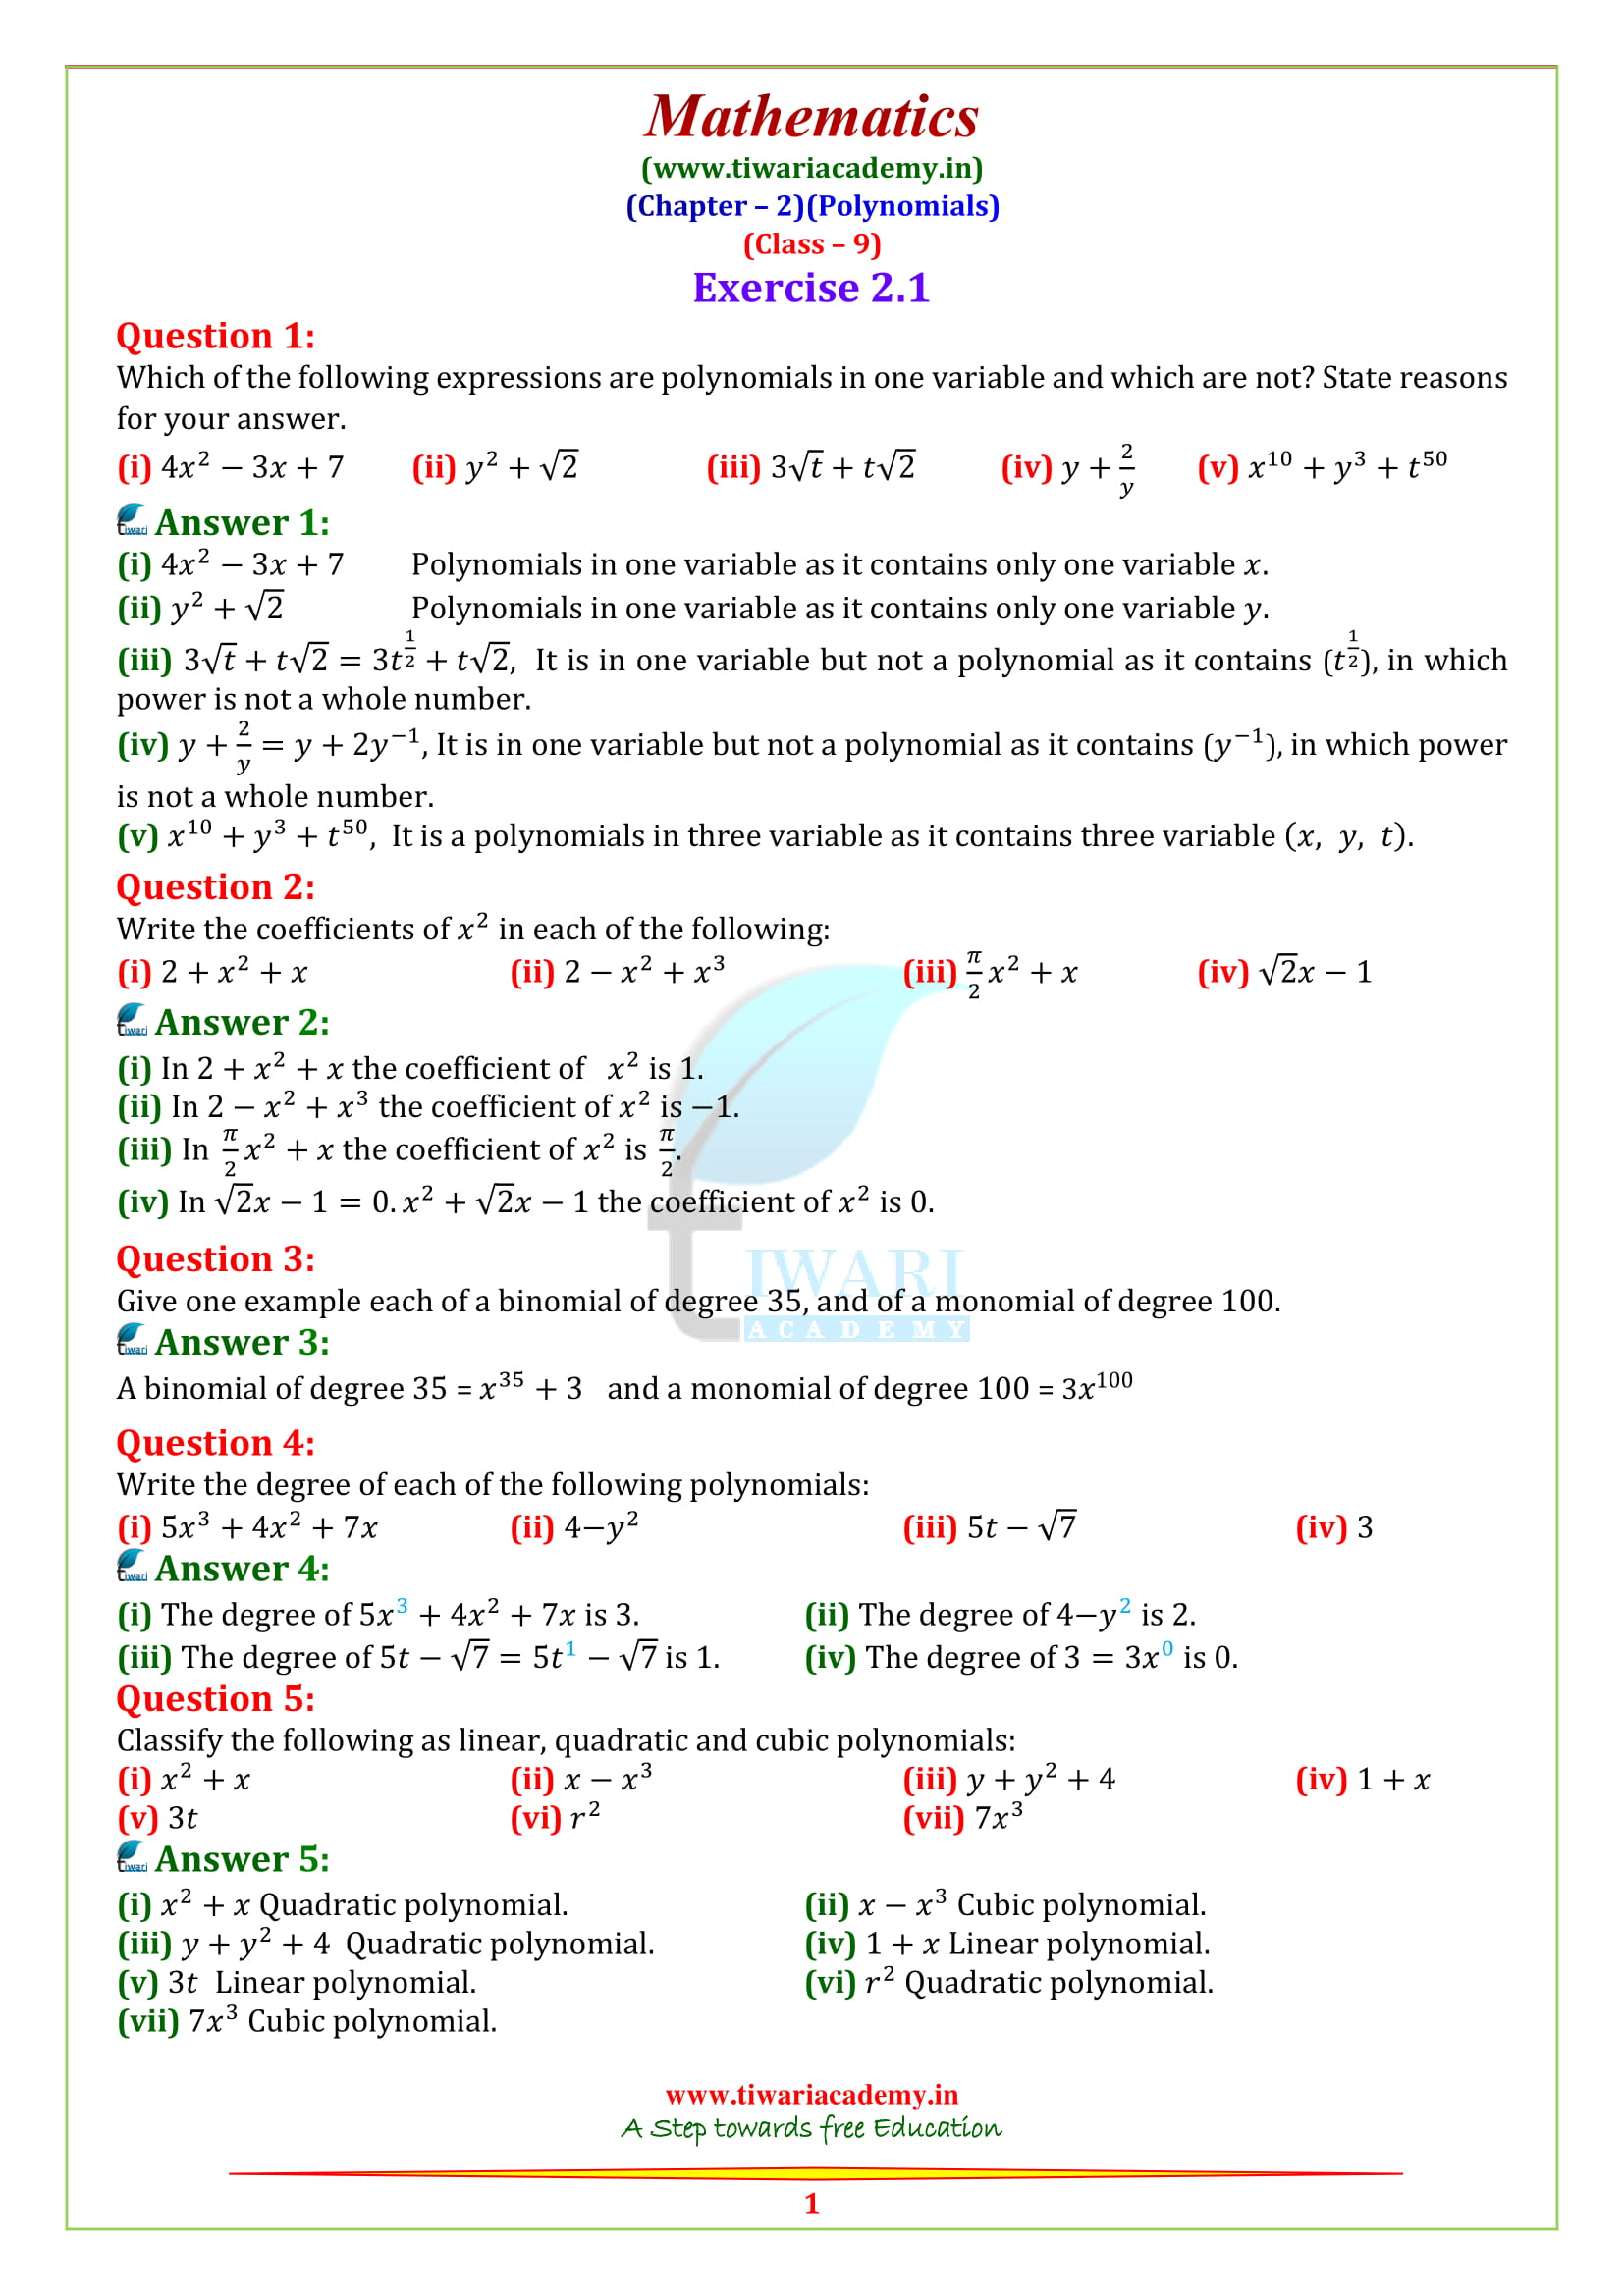 NCERT Solutions for class 9 Maths Chapter 2 Exercise 2.1